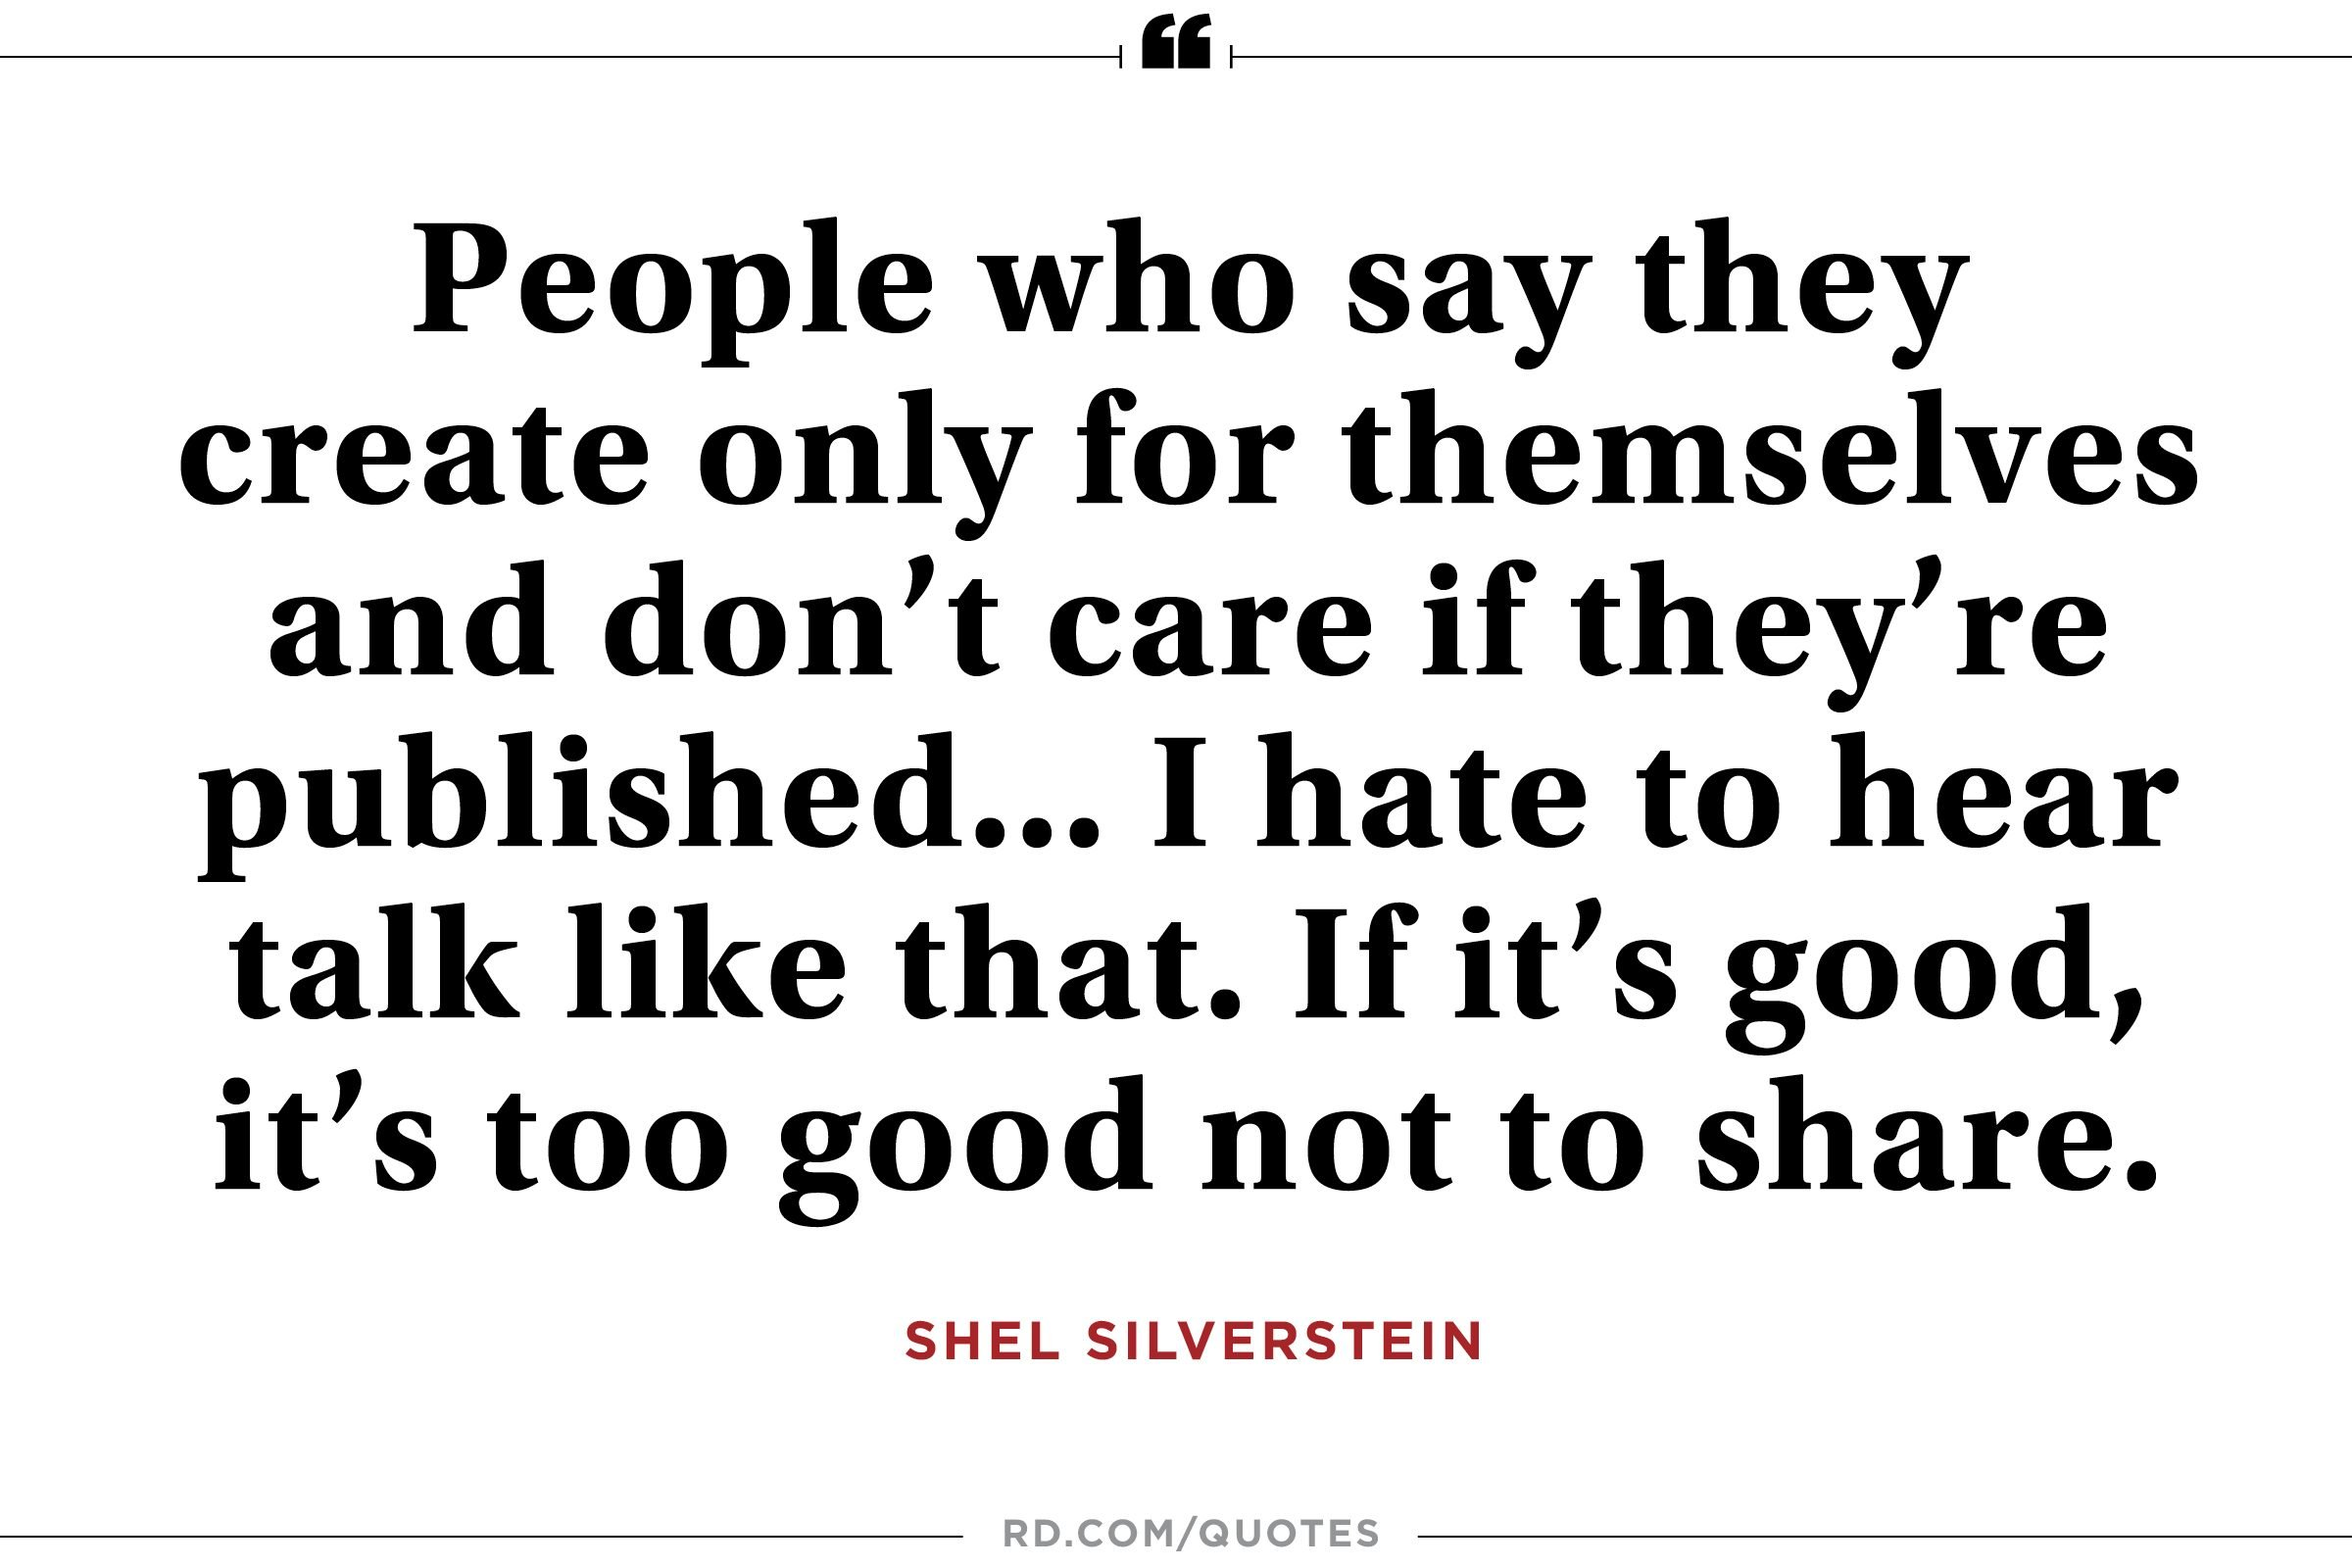 Shel Silverstein Reading Quotes: 11 Motivational Quotes From Shel Silverstein